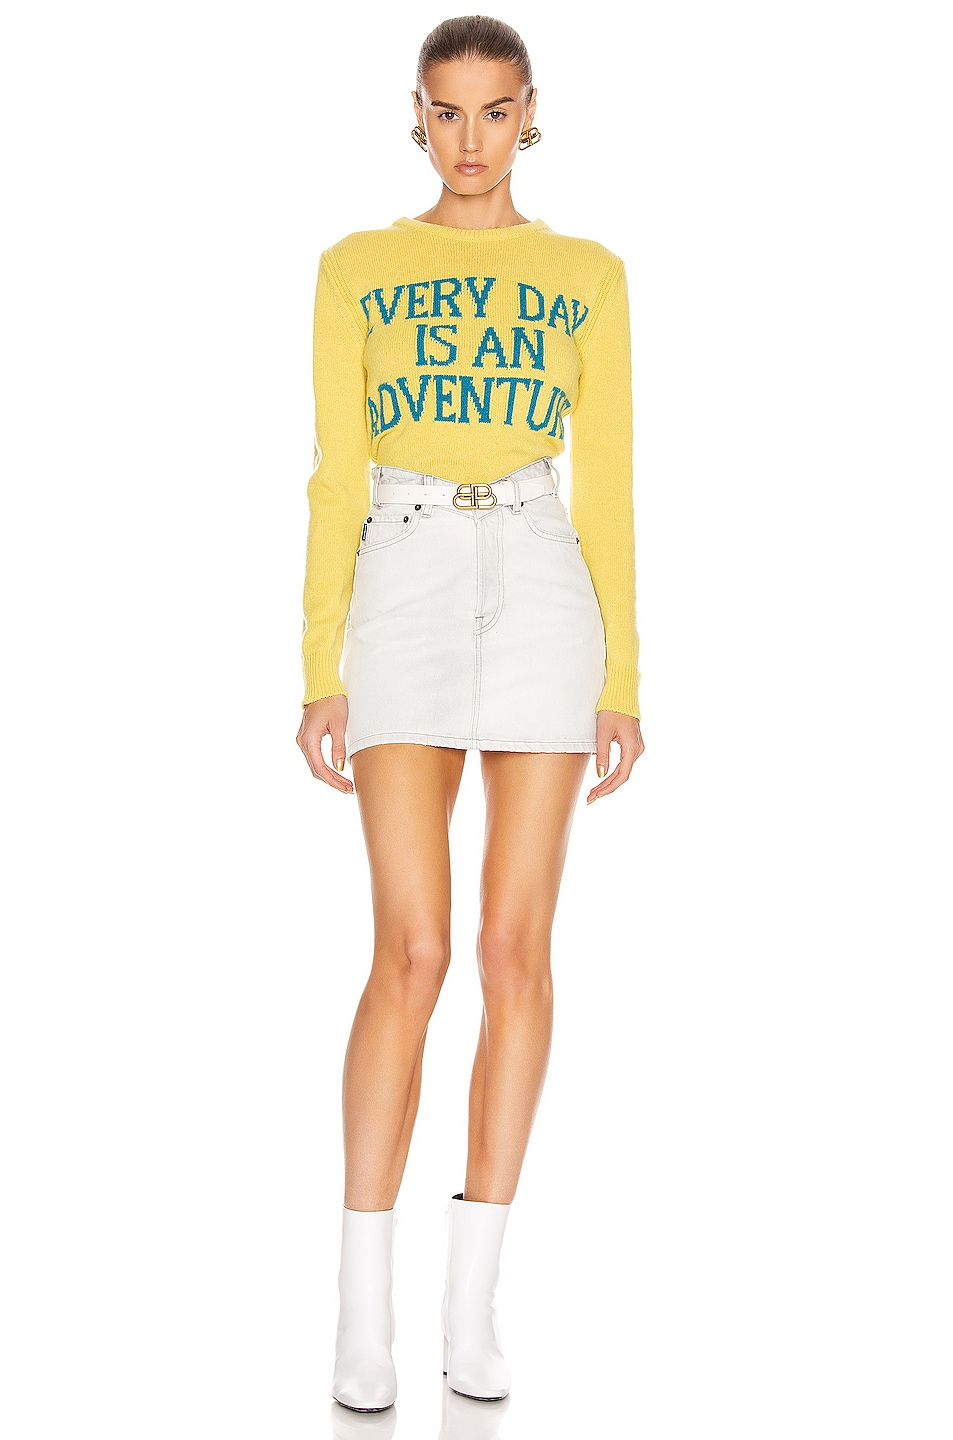 Image 5 of ALBERTA FERRETTI Everyday Is An Adventure Sweater in Yellow & Blue